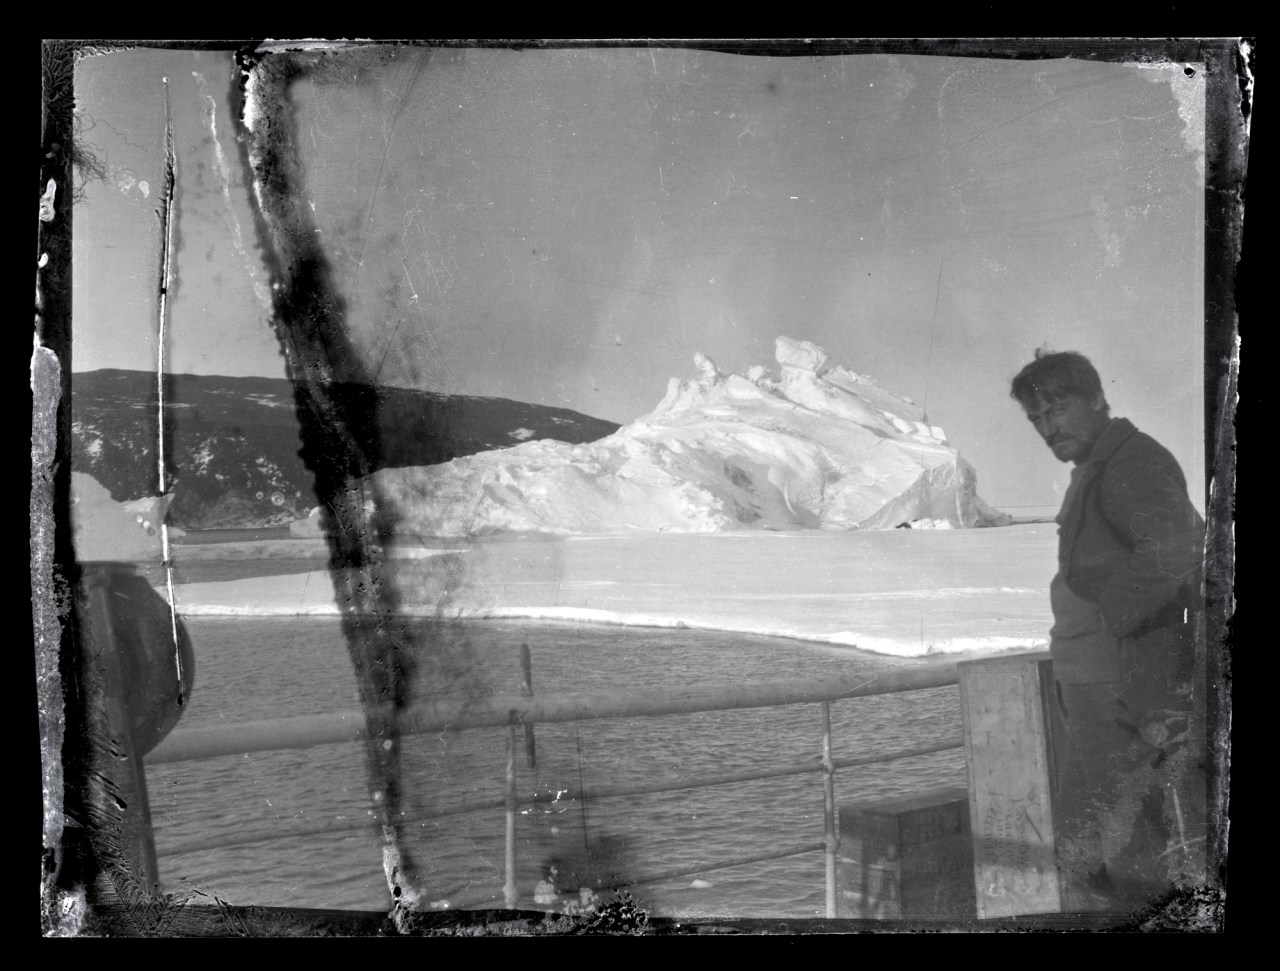 Alexander Stevens on the deck of the Aurora, McMurdo Sound, Antarctica. (Photo courtesy of Antarctic Heritage Trust, www.nzaht.org)